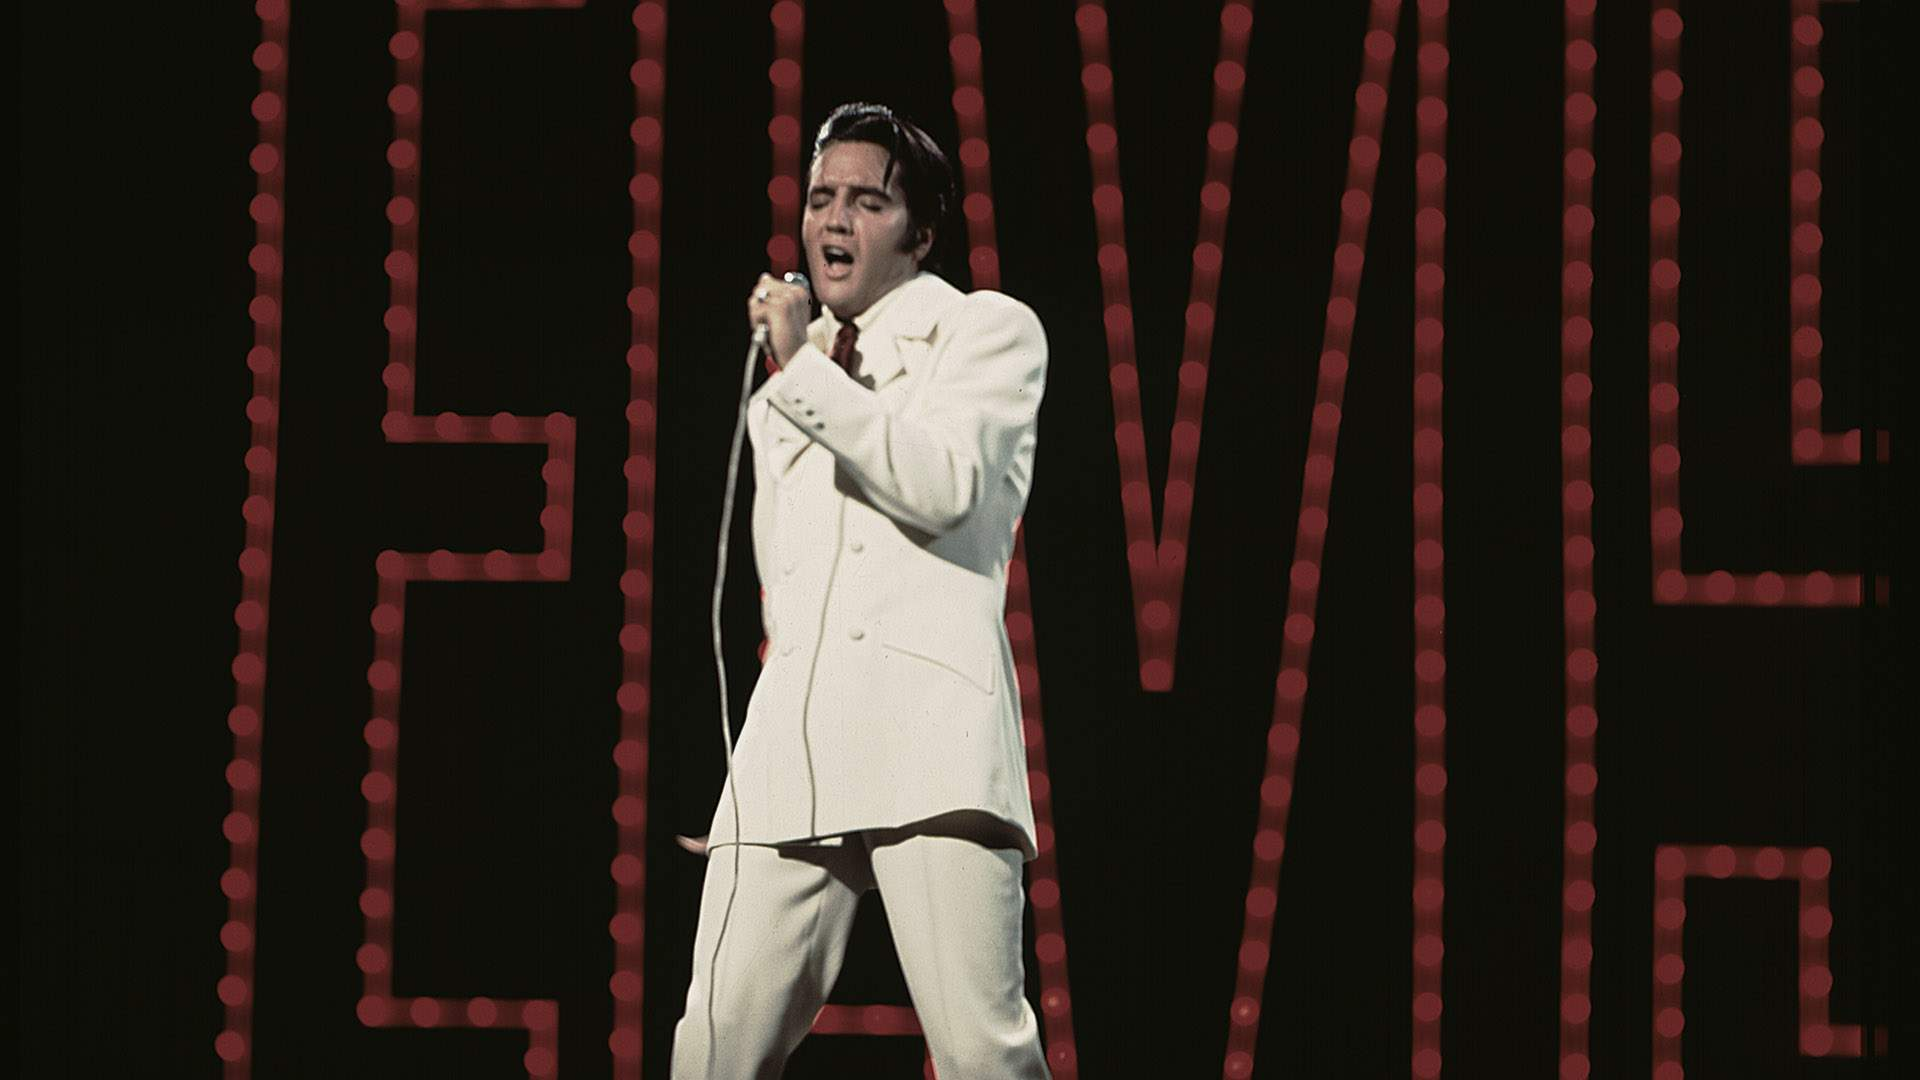 A Massive Elvis Presley Exhibition Is Coming to Australia Direct From Graceland